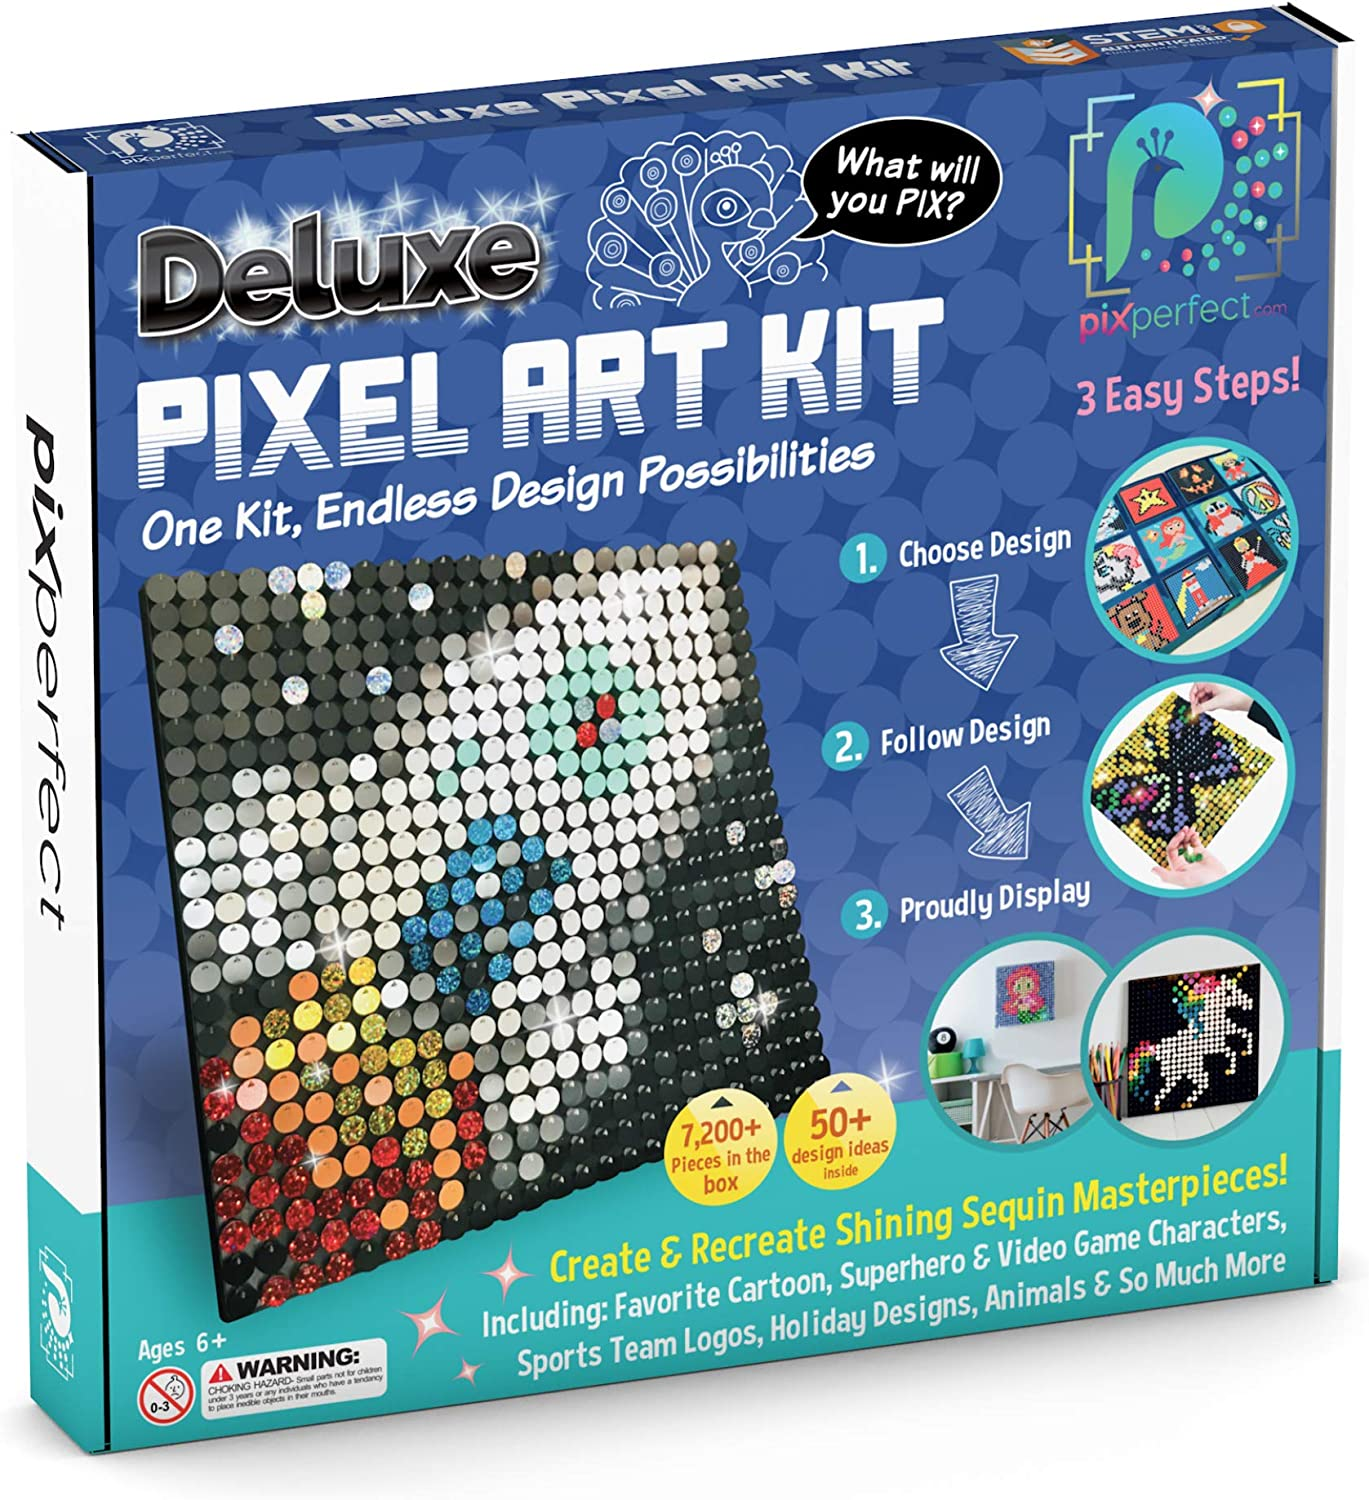 Amazon Com Pix Perfect Deluxe Pixel Art Kit New Version For Fans Of Pixel Art Crafts Or Sequins 18 Colors 7 200 Pieces 50 Design Ideas Hours Of Creative Fun Toys Games